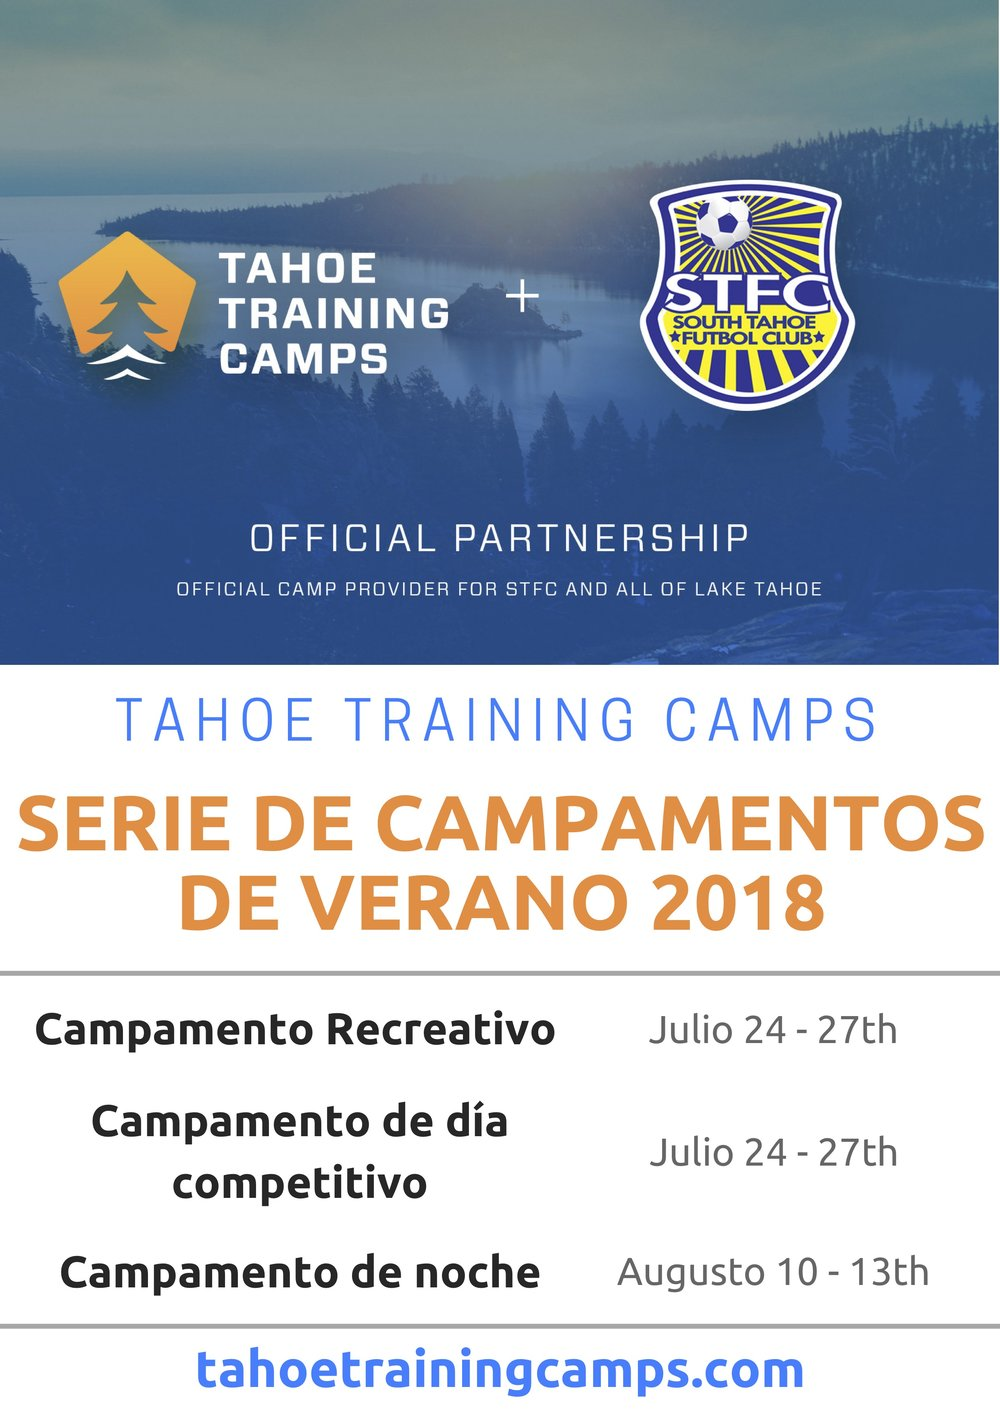 STFC @ Tahoe Training Camps 2018 (spanish)_1.jpg